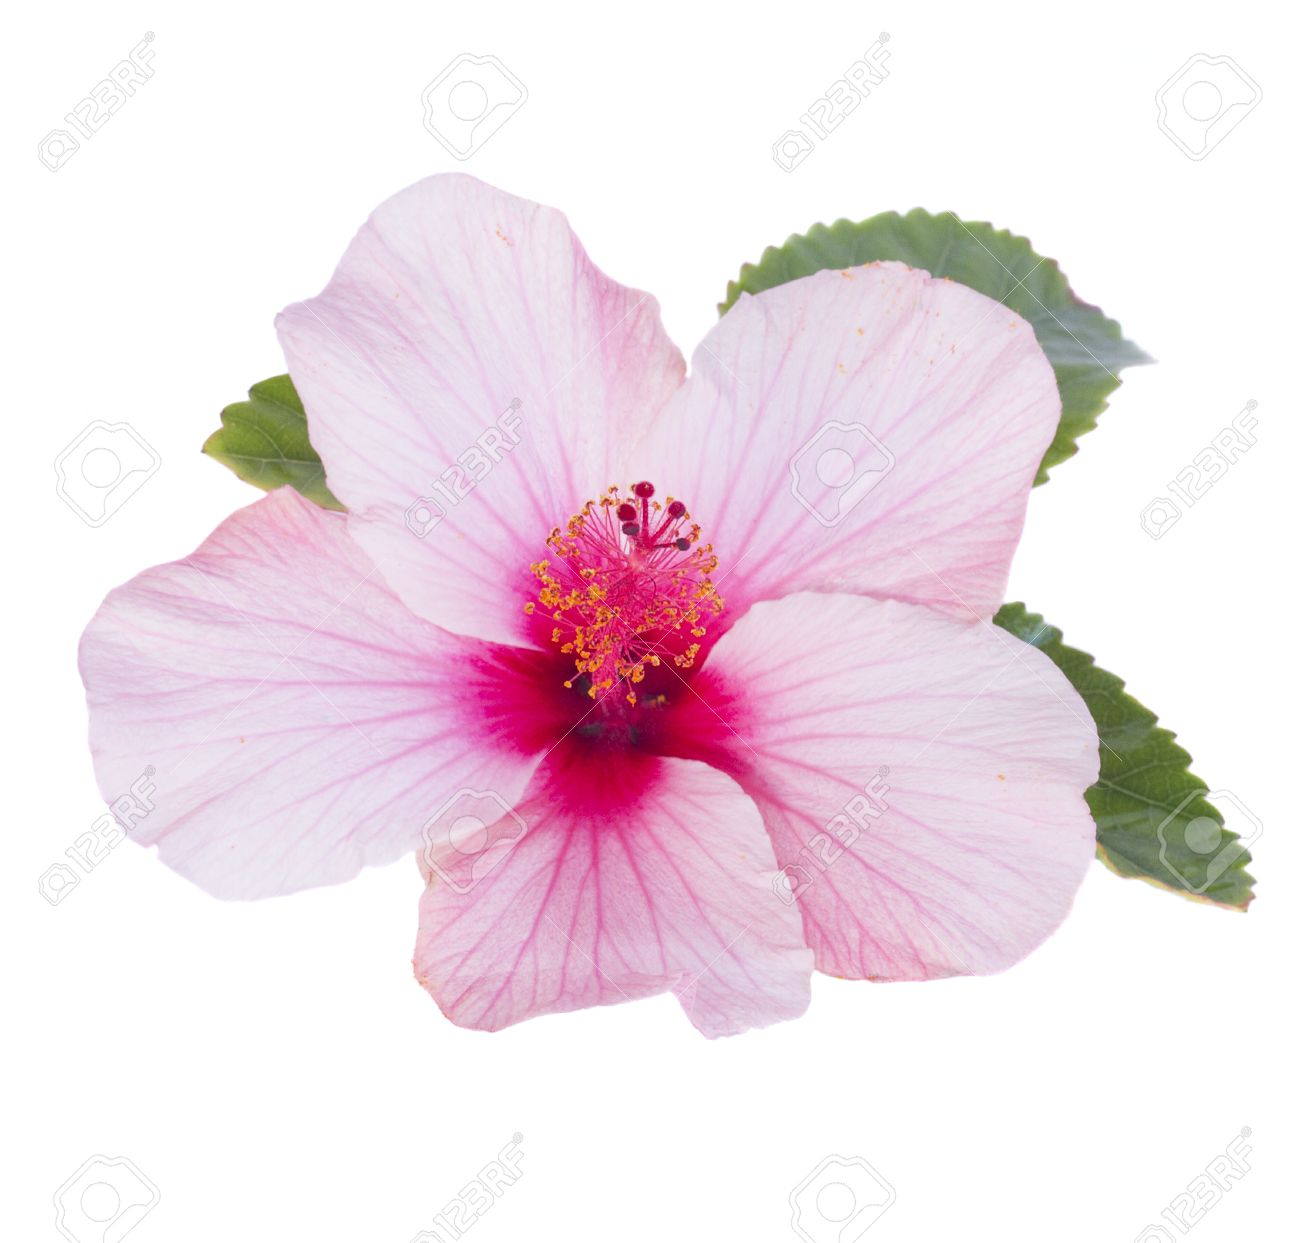 One pink hibiscus flower with leaves isolated on white background one pink hibiscus flower with leaves isolated on white background stock photo 26197239 izmirmasajfo